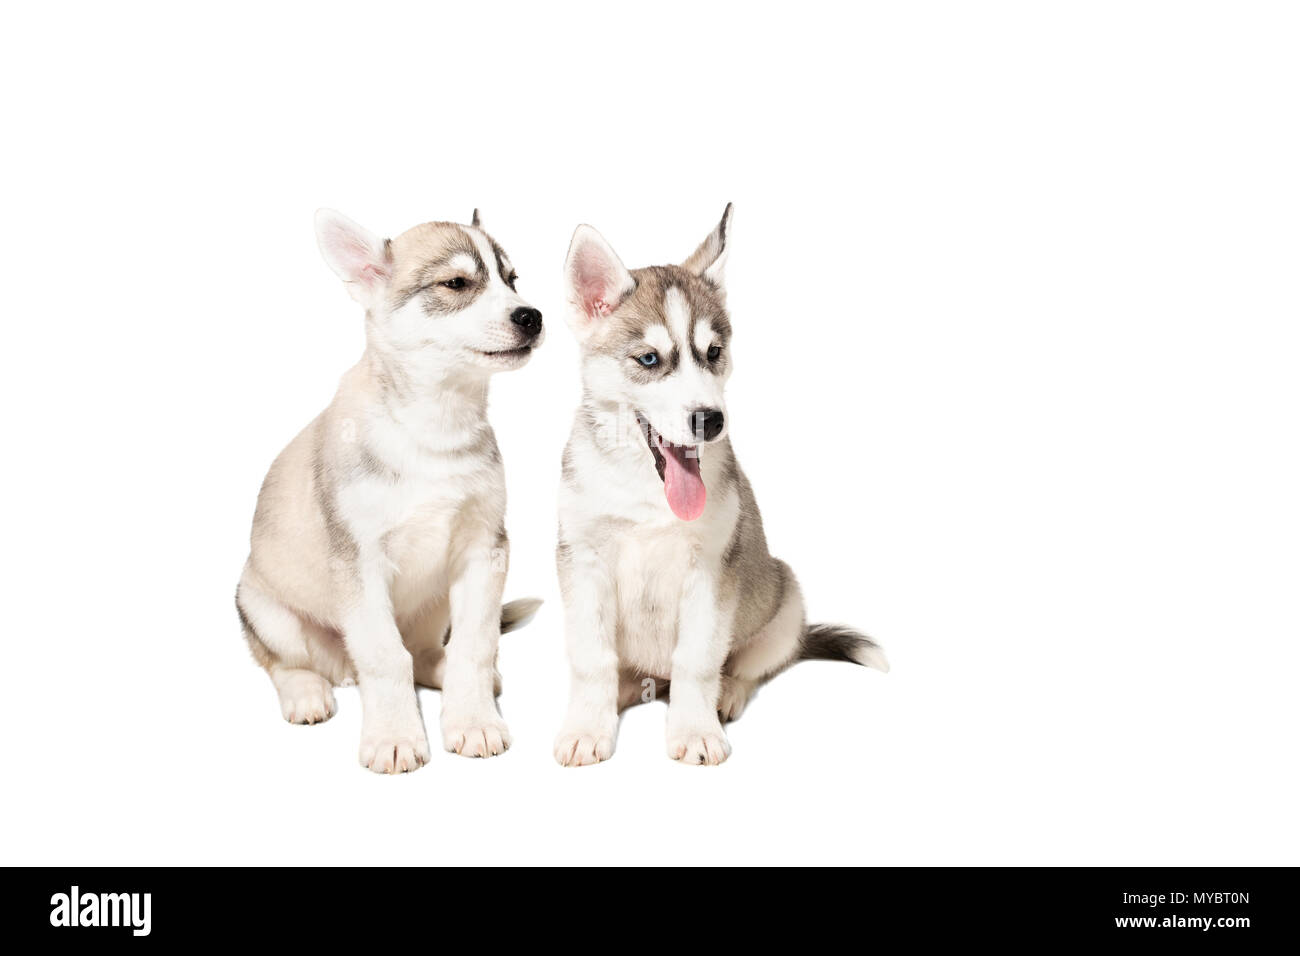 Two cute little husky puppies isolated on white background - Stock Image